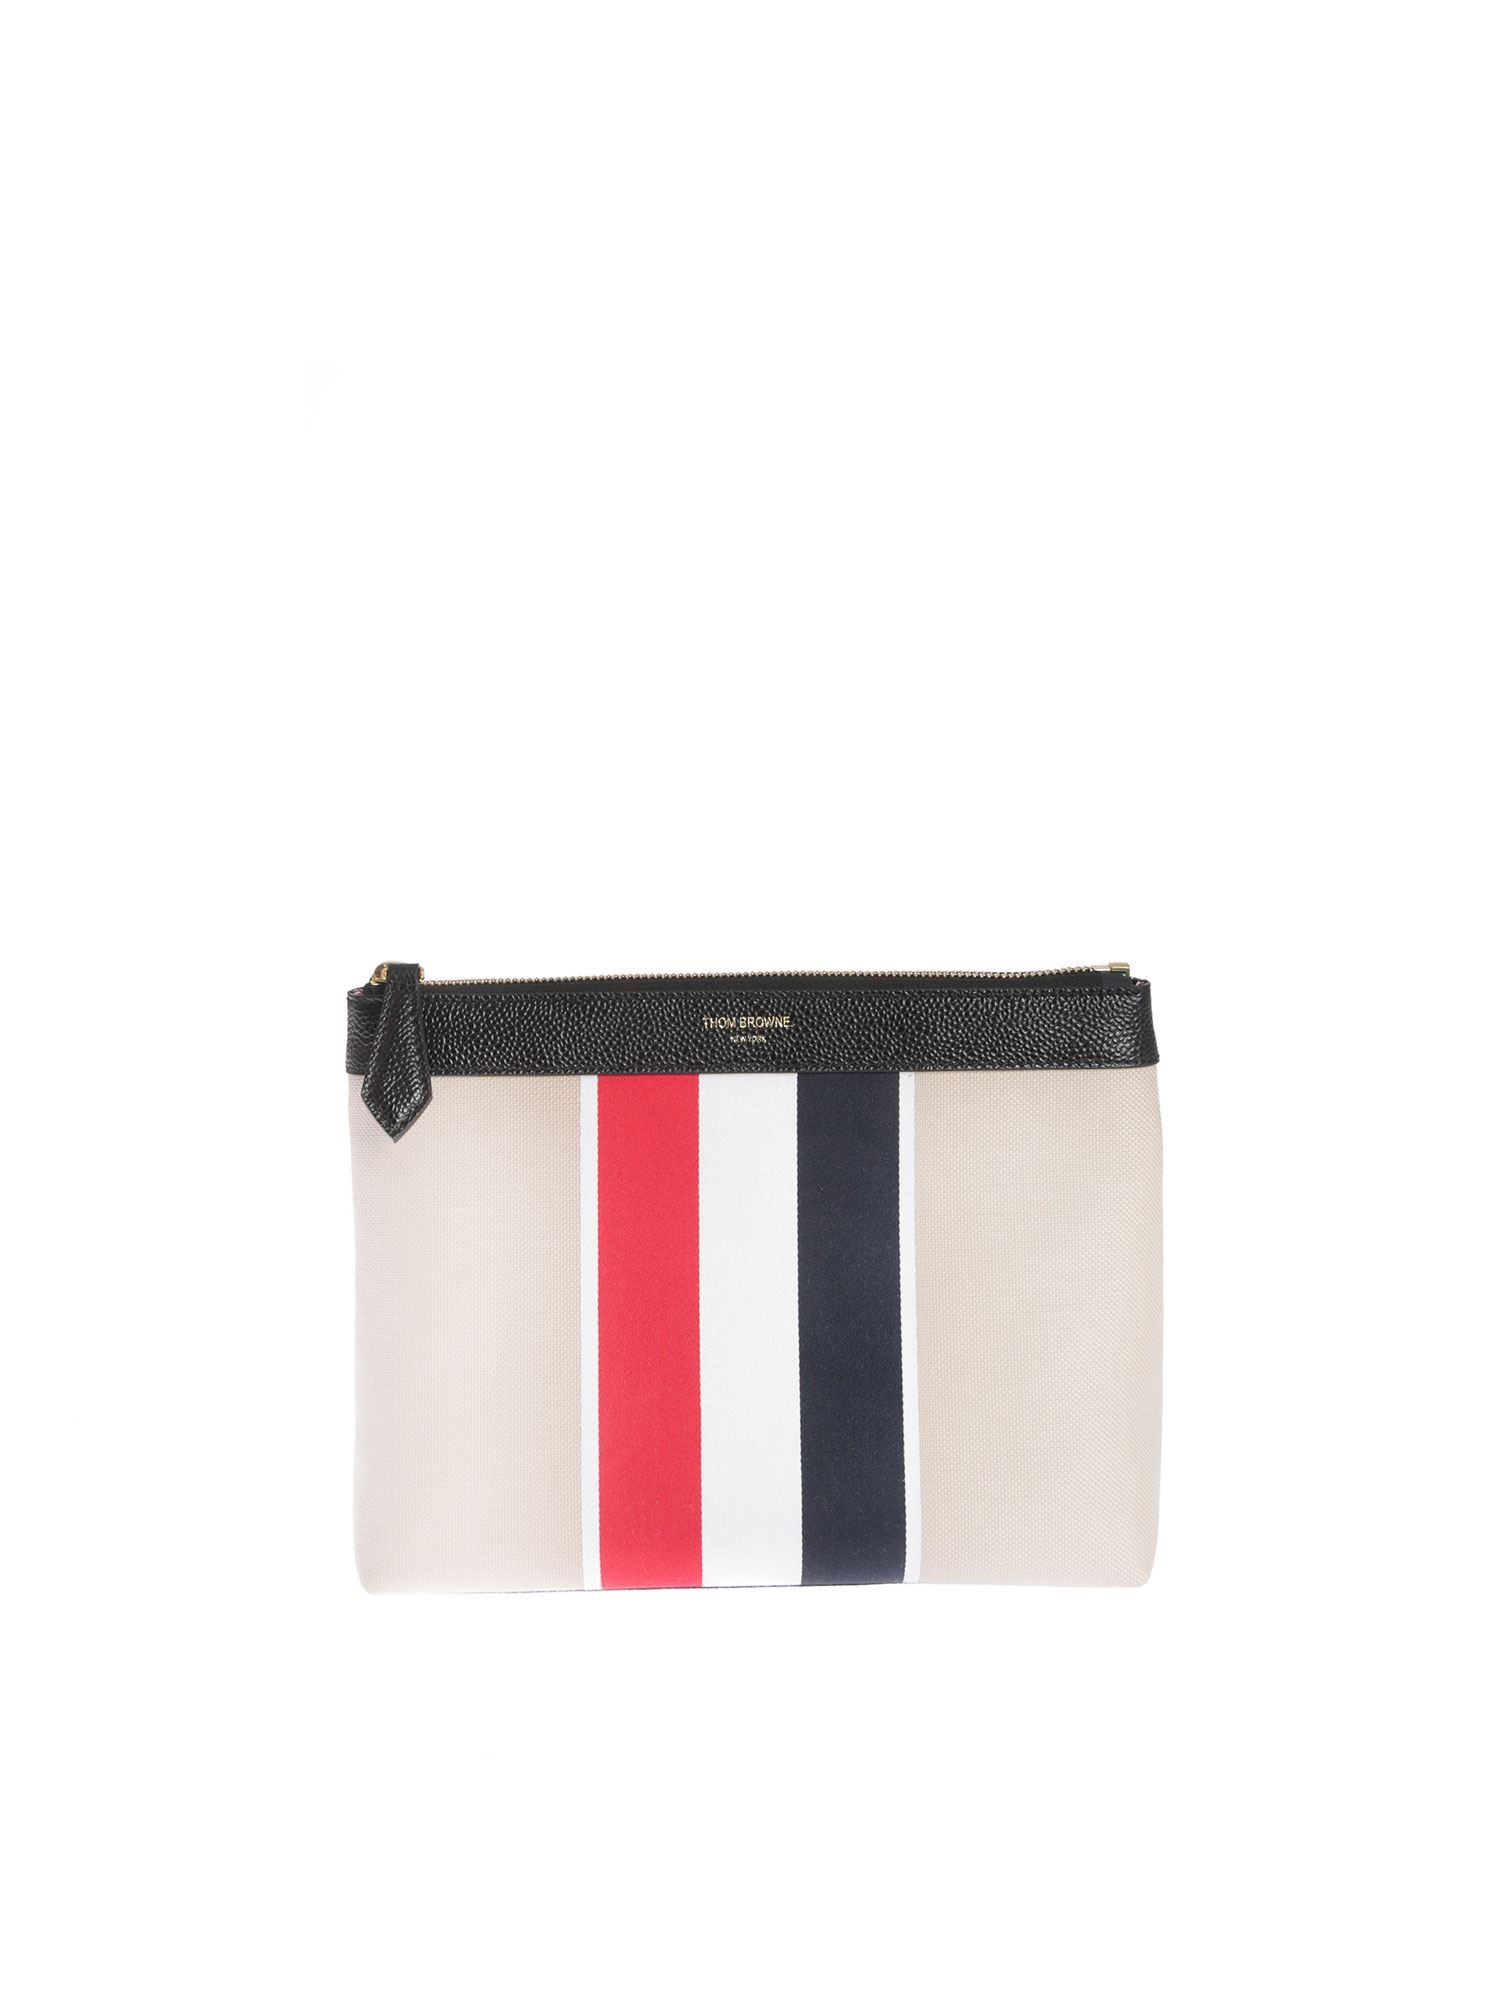 Thom Browne 3-BAND BEAUTY CASE IN CREAM COLOR